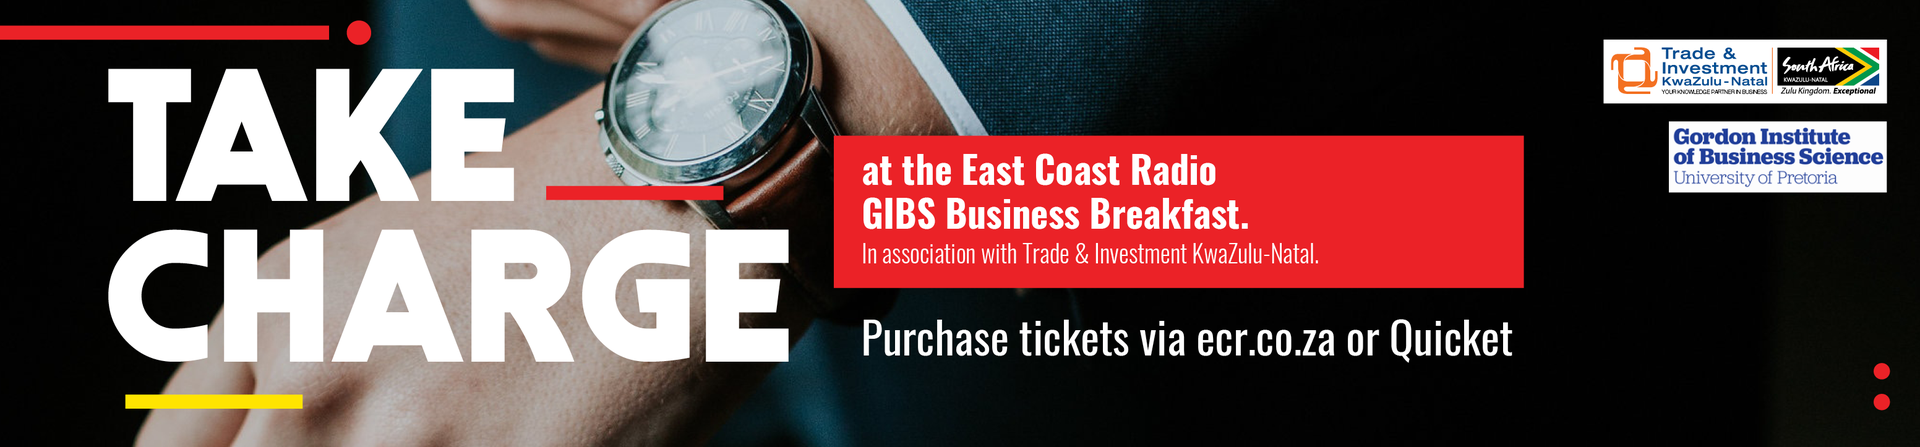 ECR Cover Image for Web_GIBS business breakfast_NEW